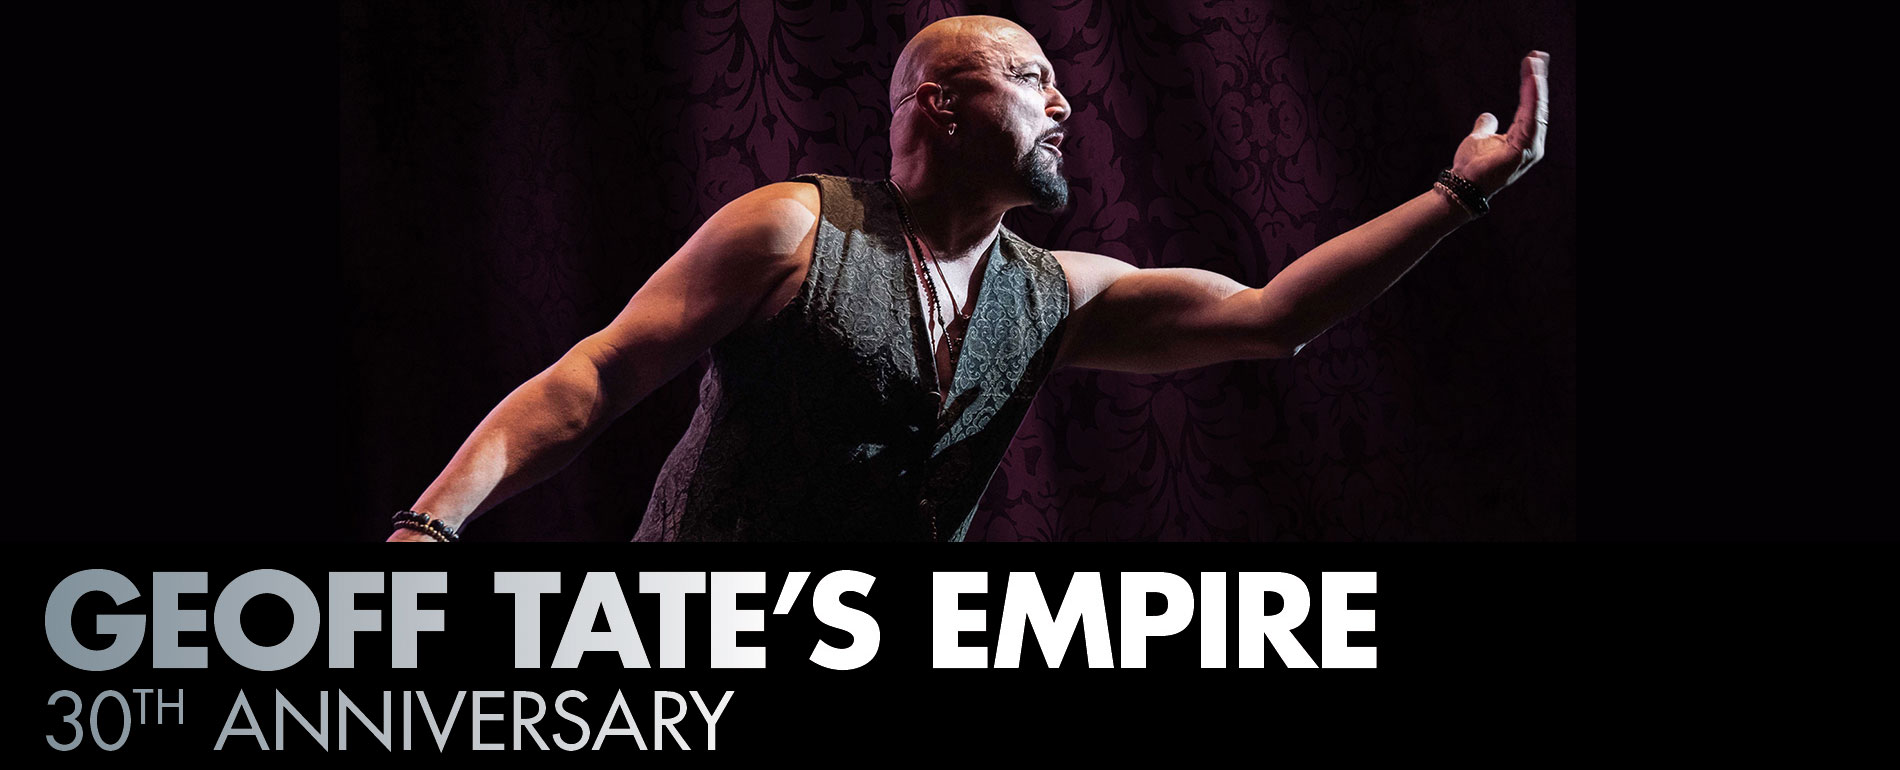 pocono entertainment - Geoff Tate's 30th Anniversary Empire Tour